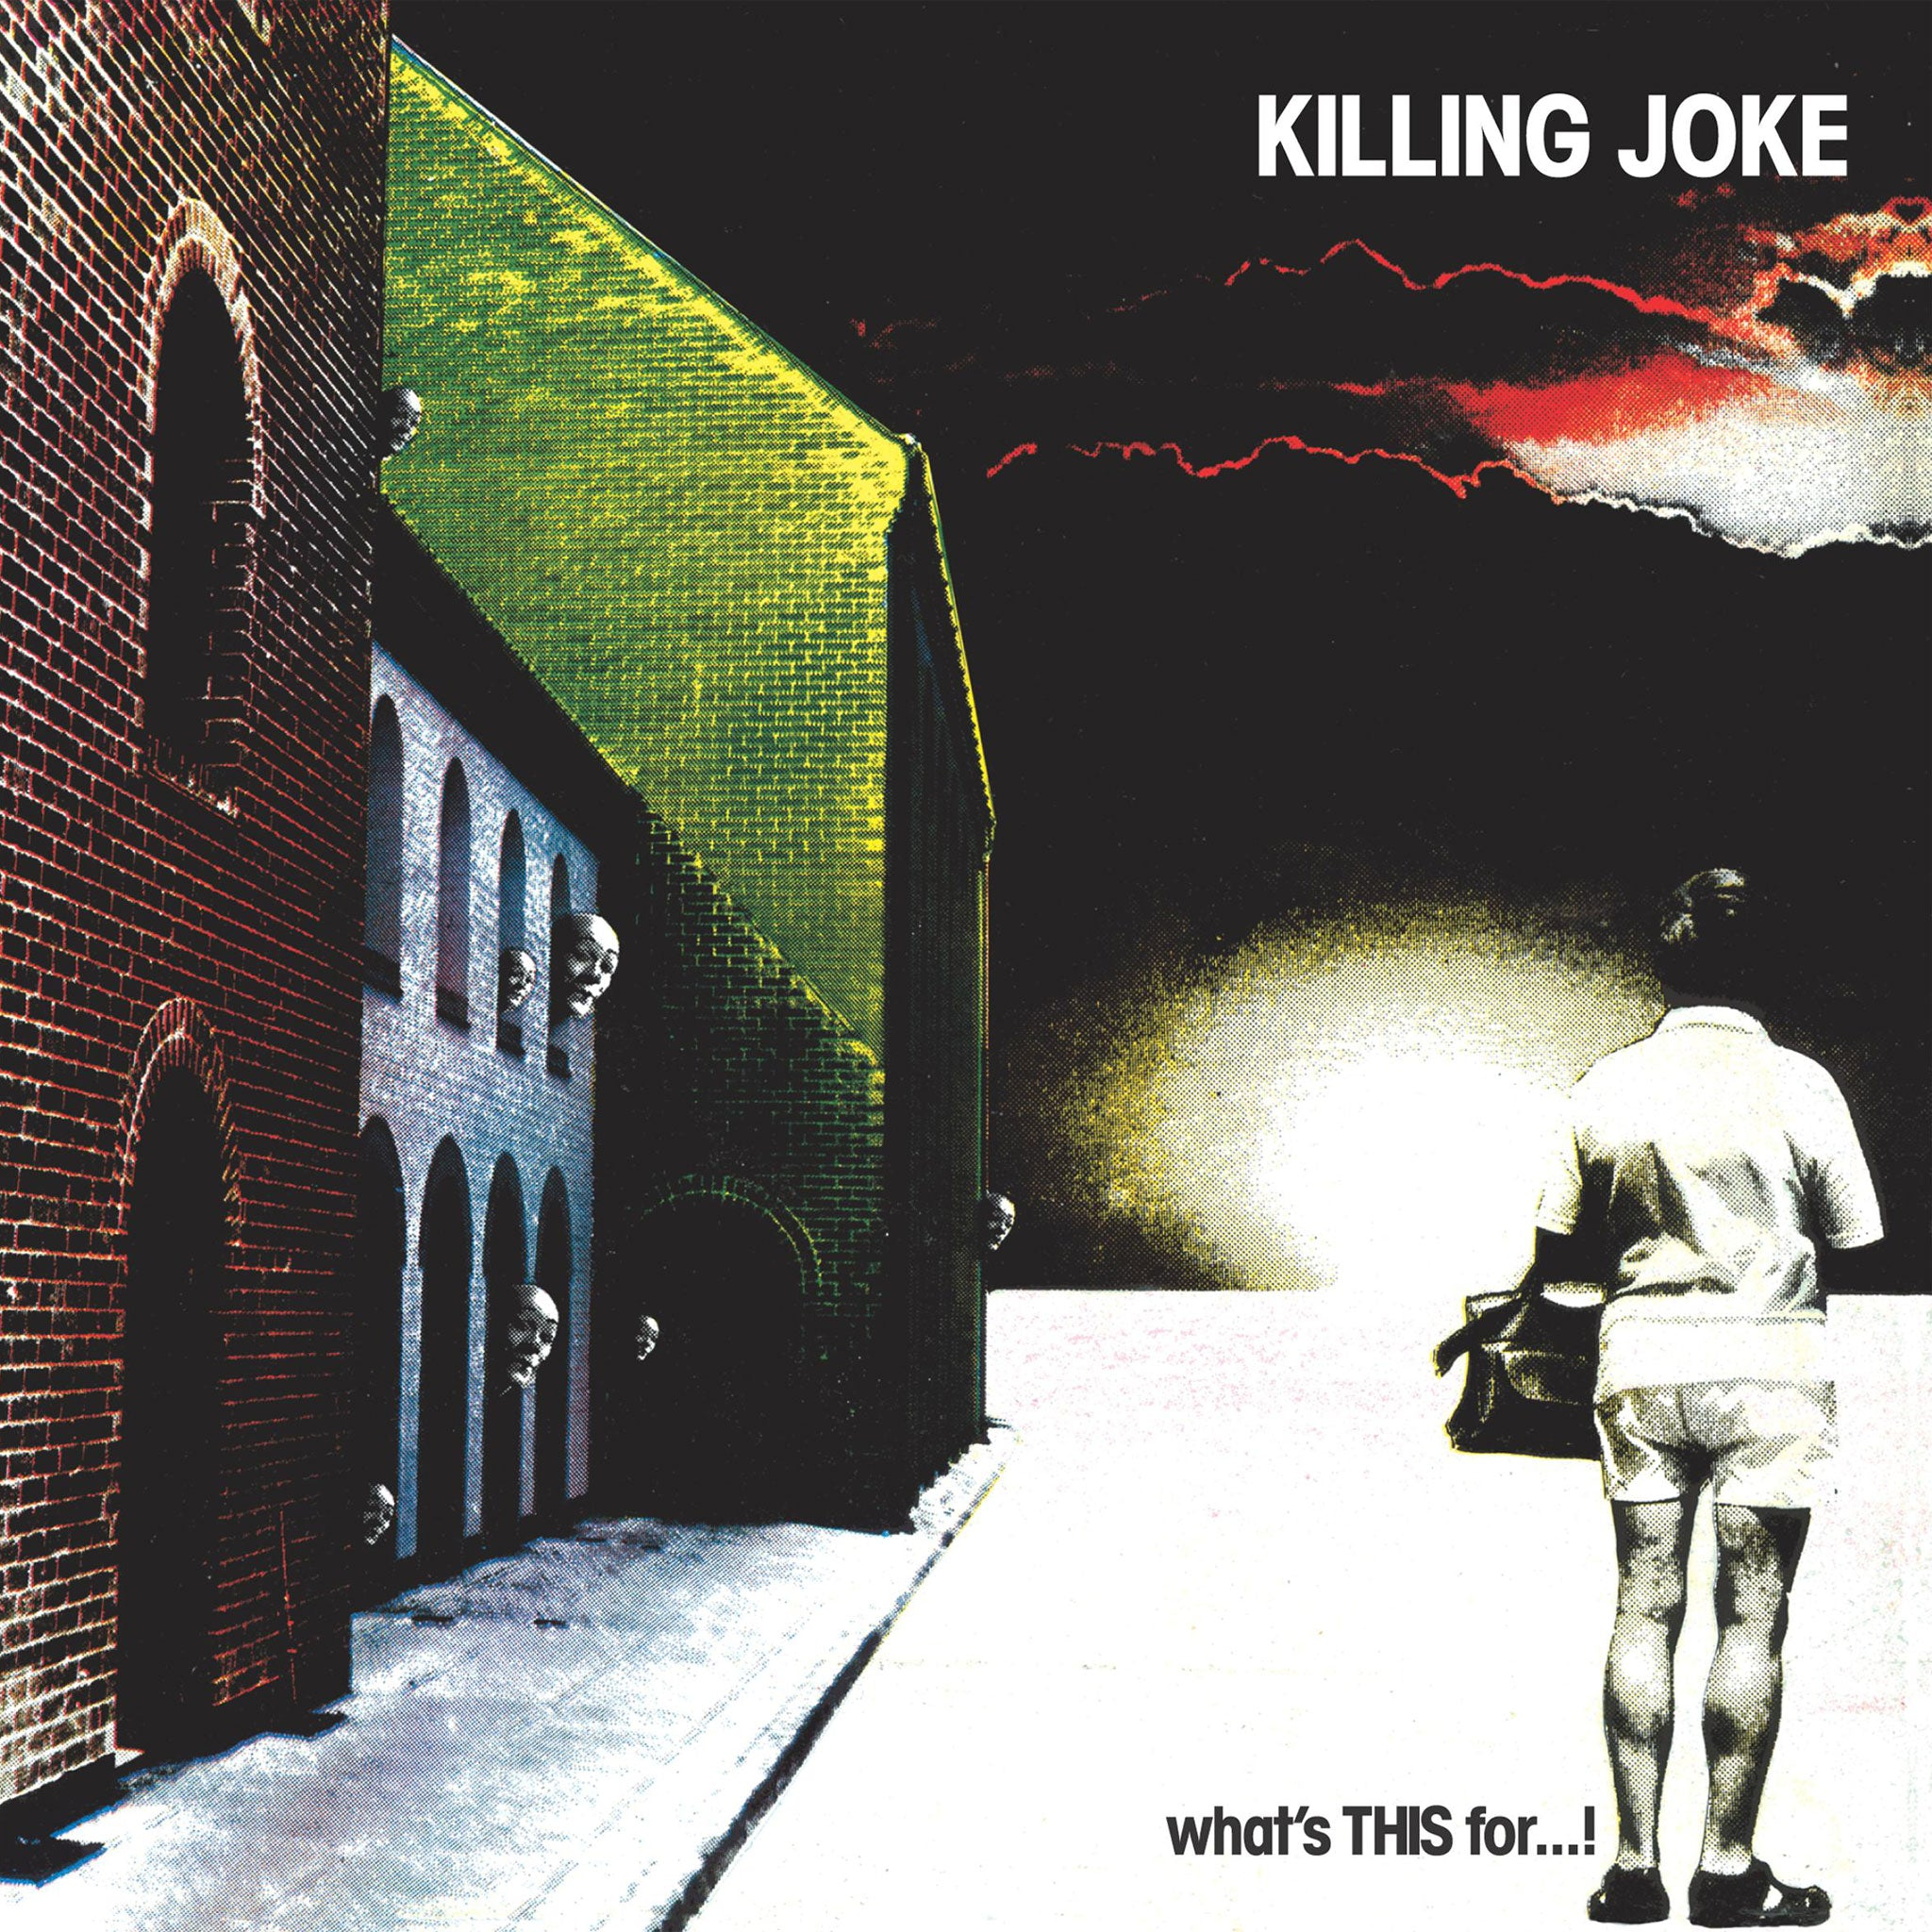 Killing Joke - What's THIS For... (2005 Reissue) (CD)